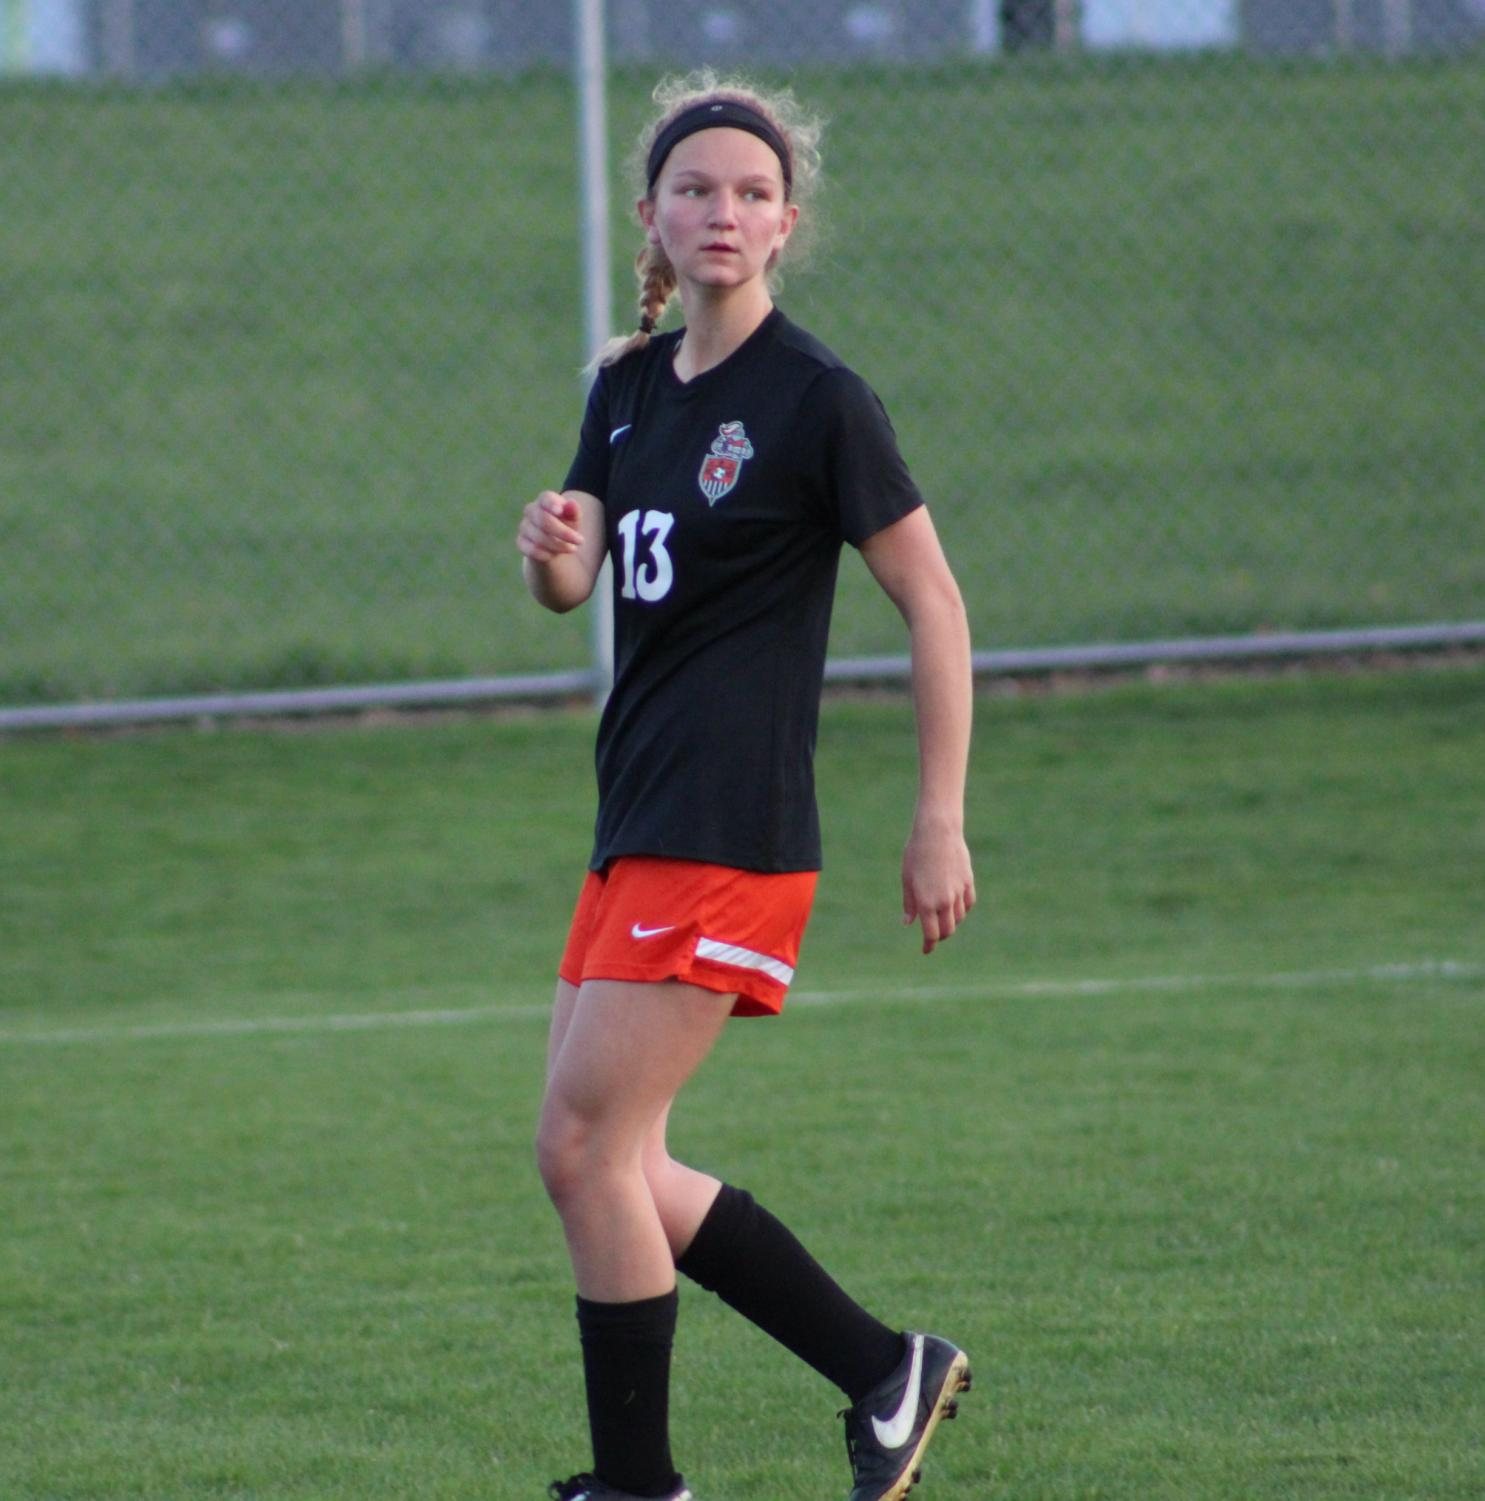 Midfielder+and+forward+Shannon+Tomlinson+keeps+an+eye+on+what+is+happening+in+the+game.+Tomlinson+plans+on+attending+University+of+Iowa.